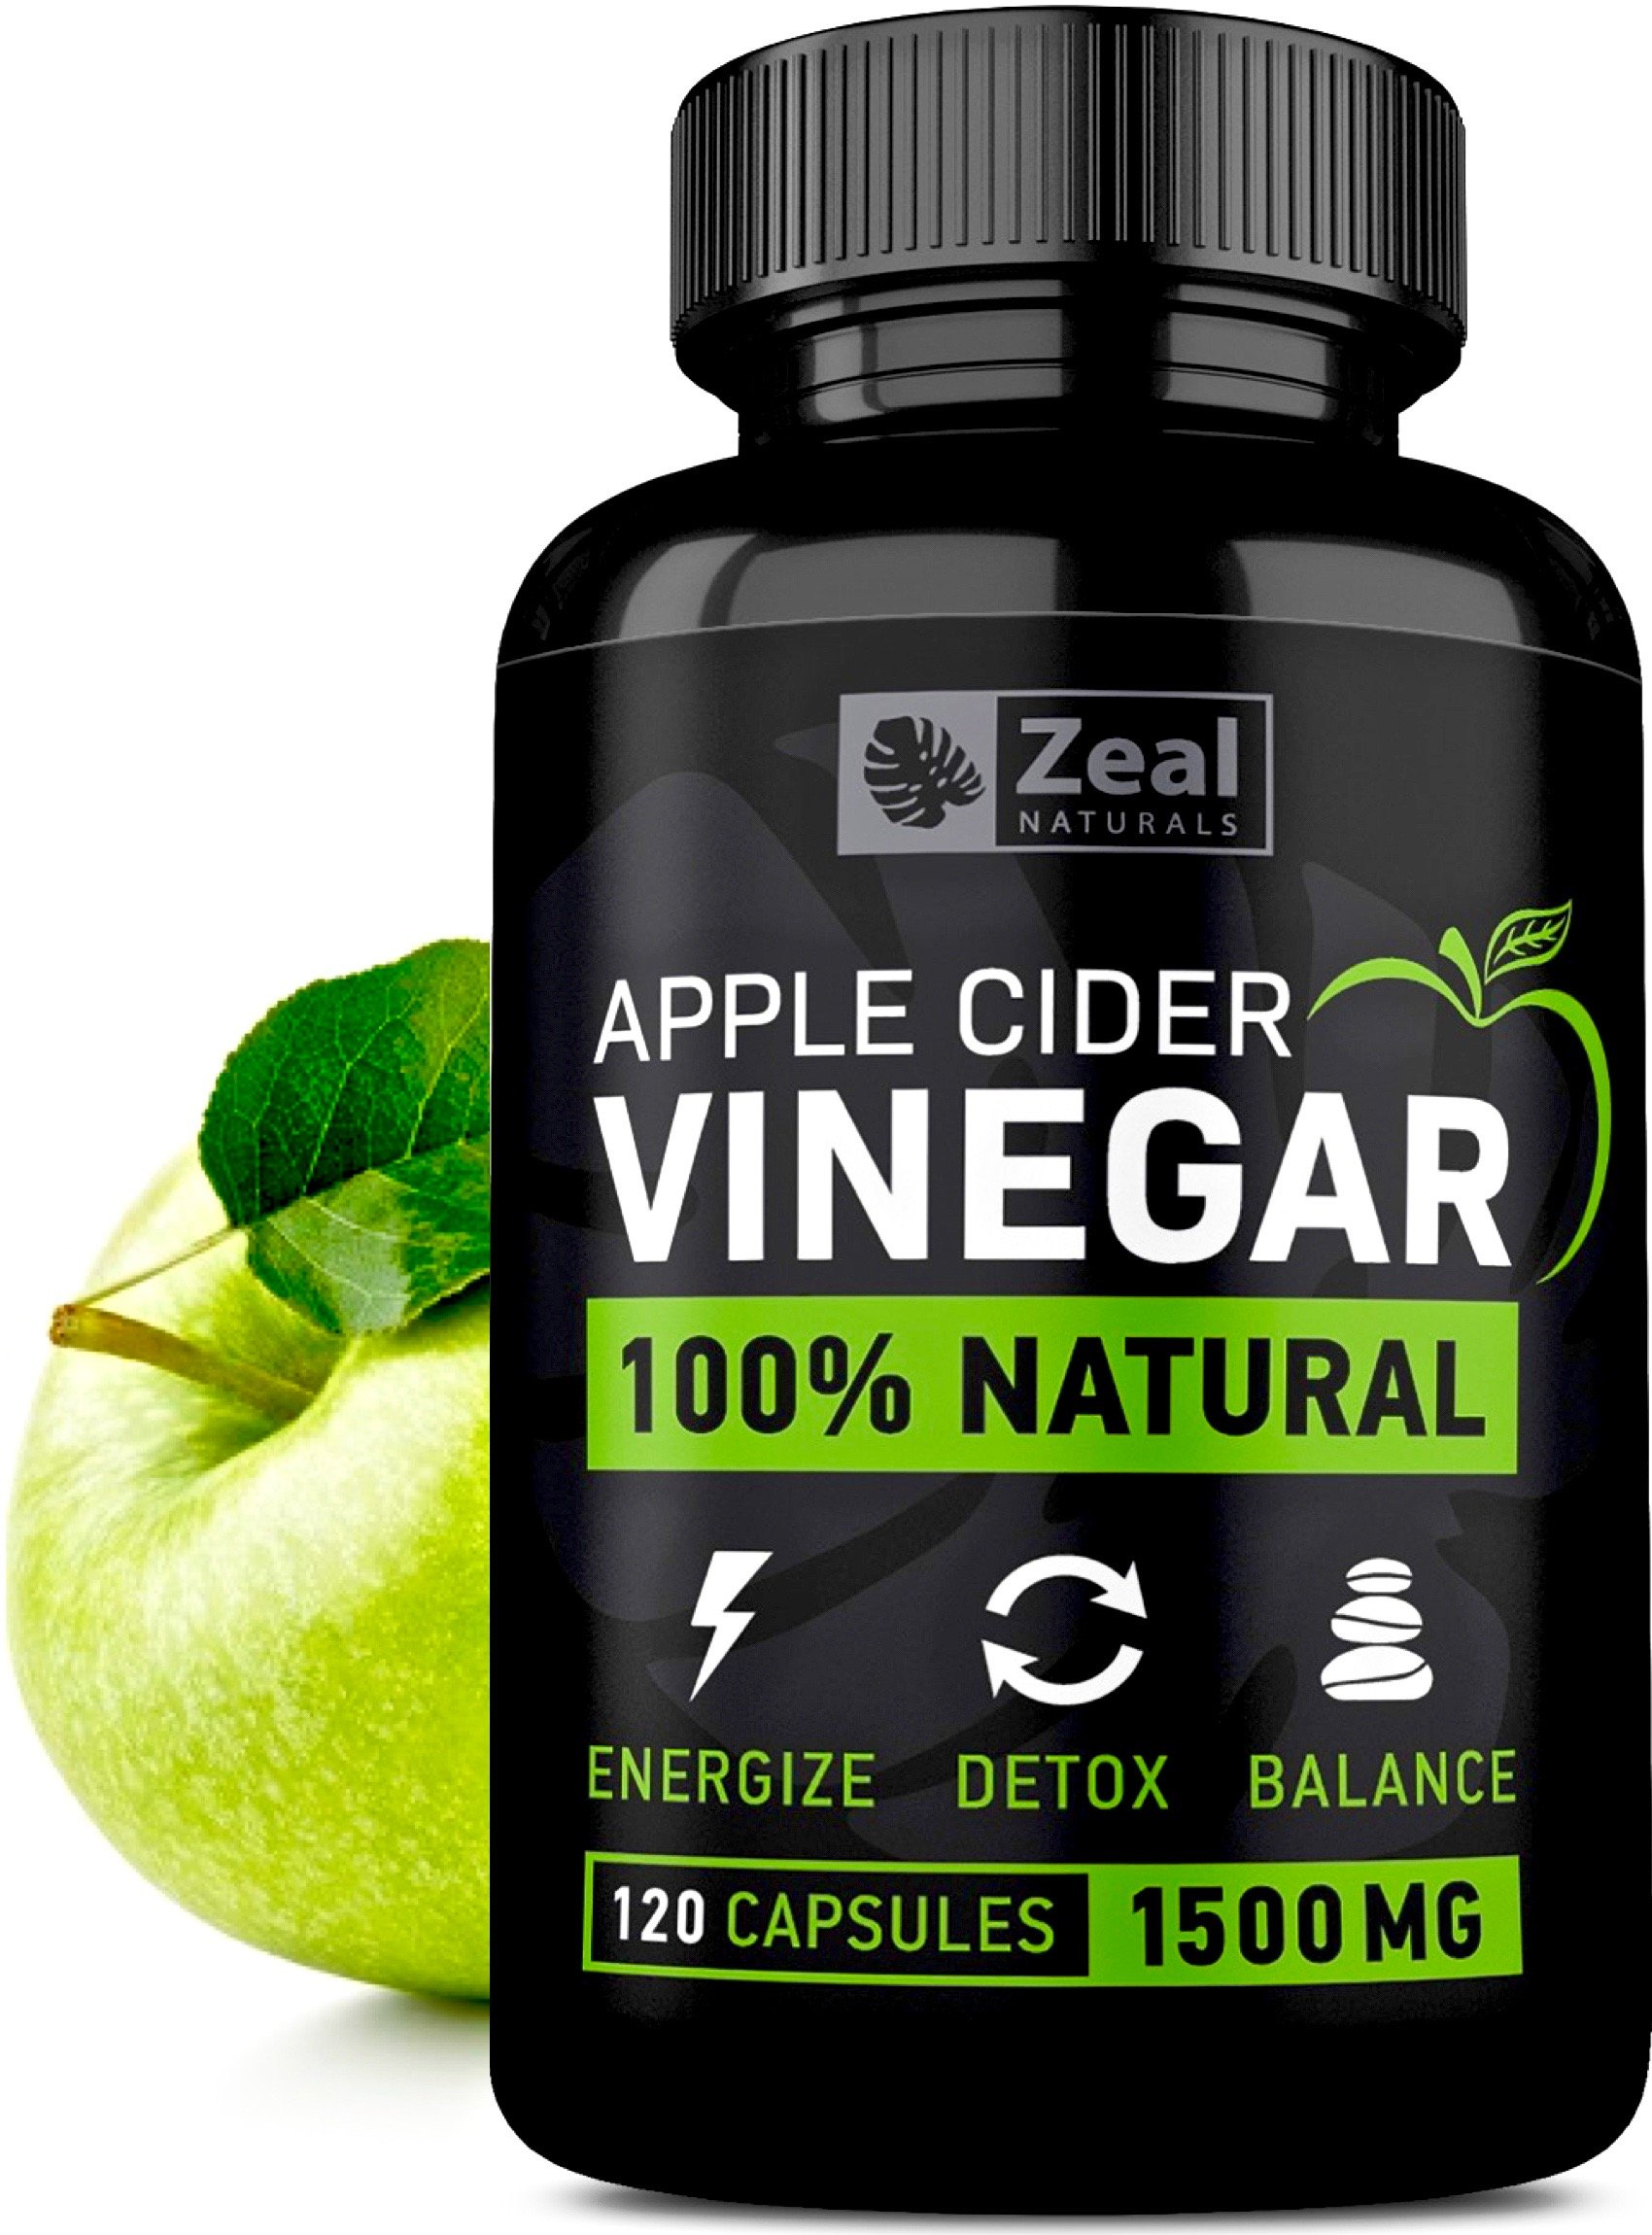 100% Natural Raw Apple Cider Vinegar Pills (1500 mg | 120 Capsules) Pure Apple Cider Vinegar with Cayenne Pepper for Fast Weight Loss Cleanse, Appetite Suppressant, & Bloating Relief by ZEAL NATURALS